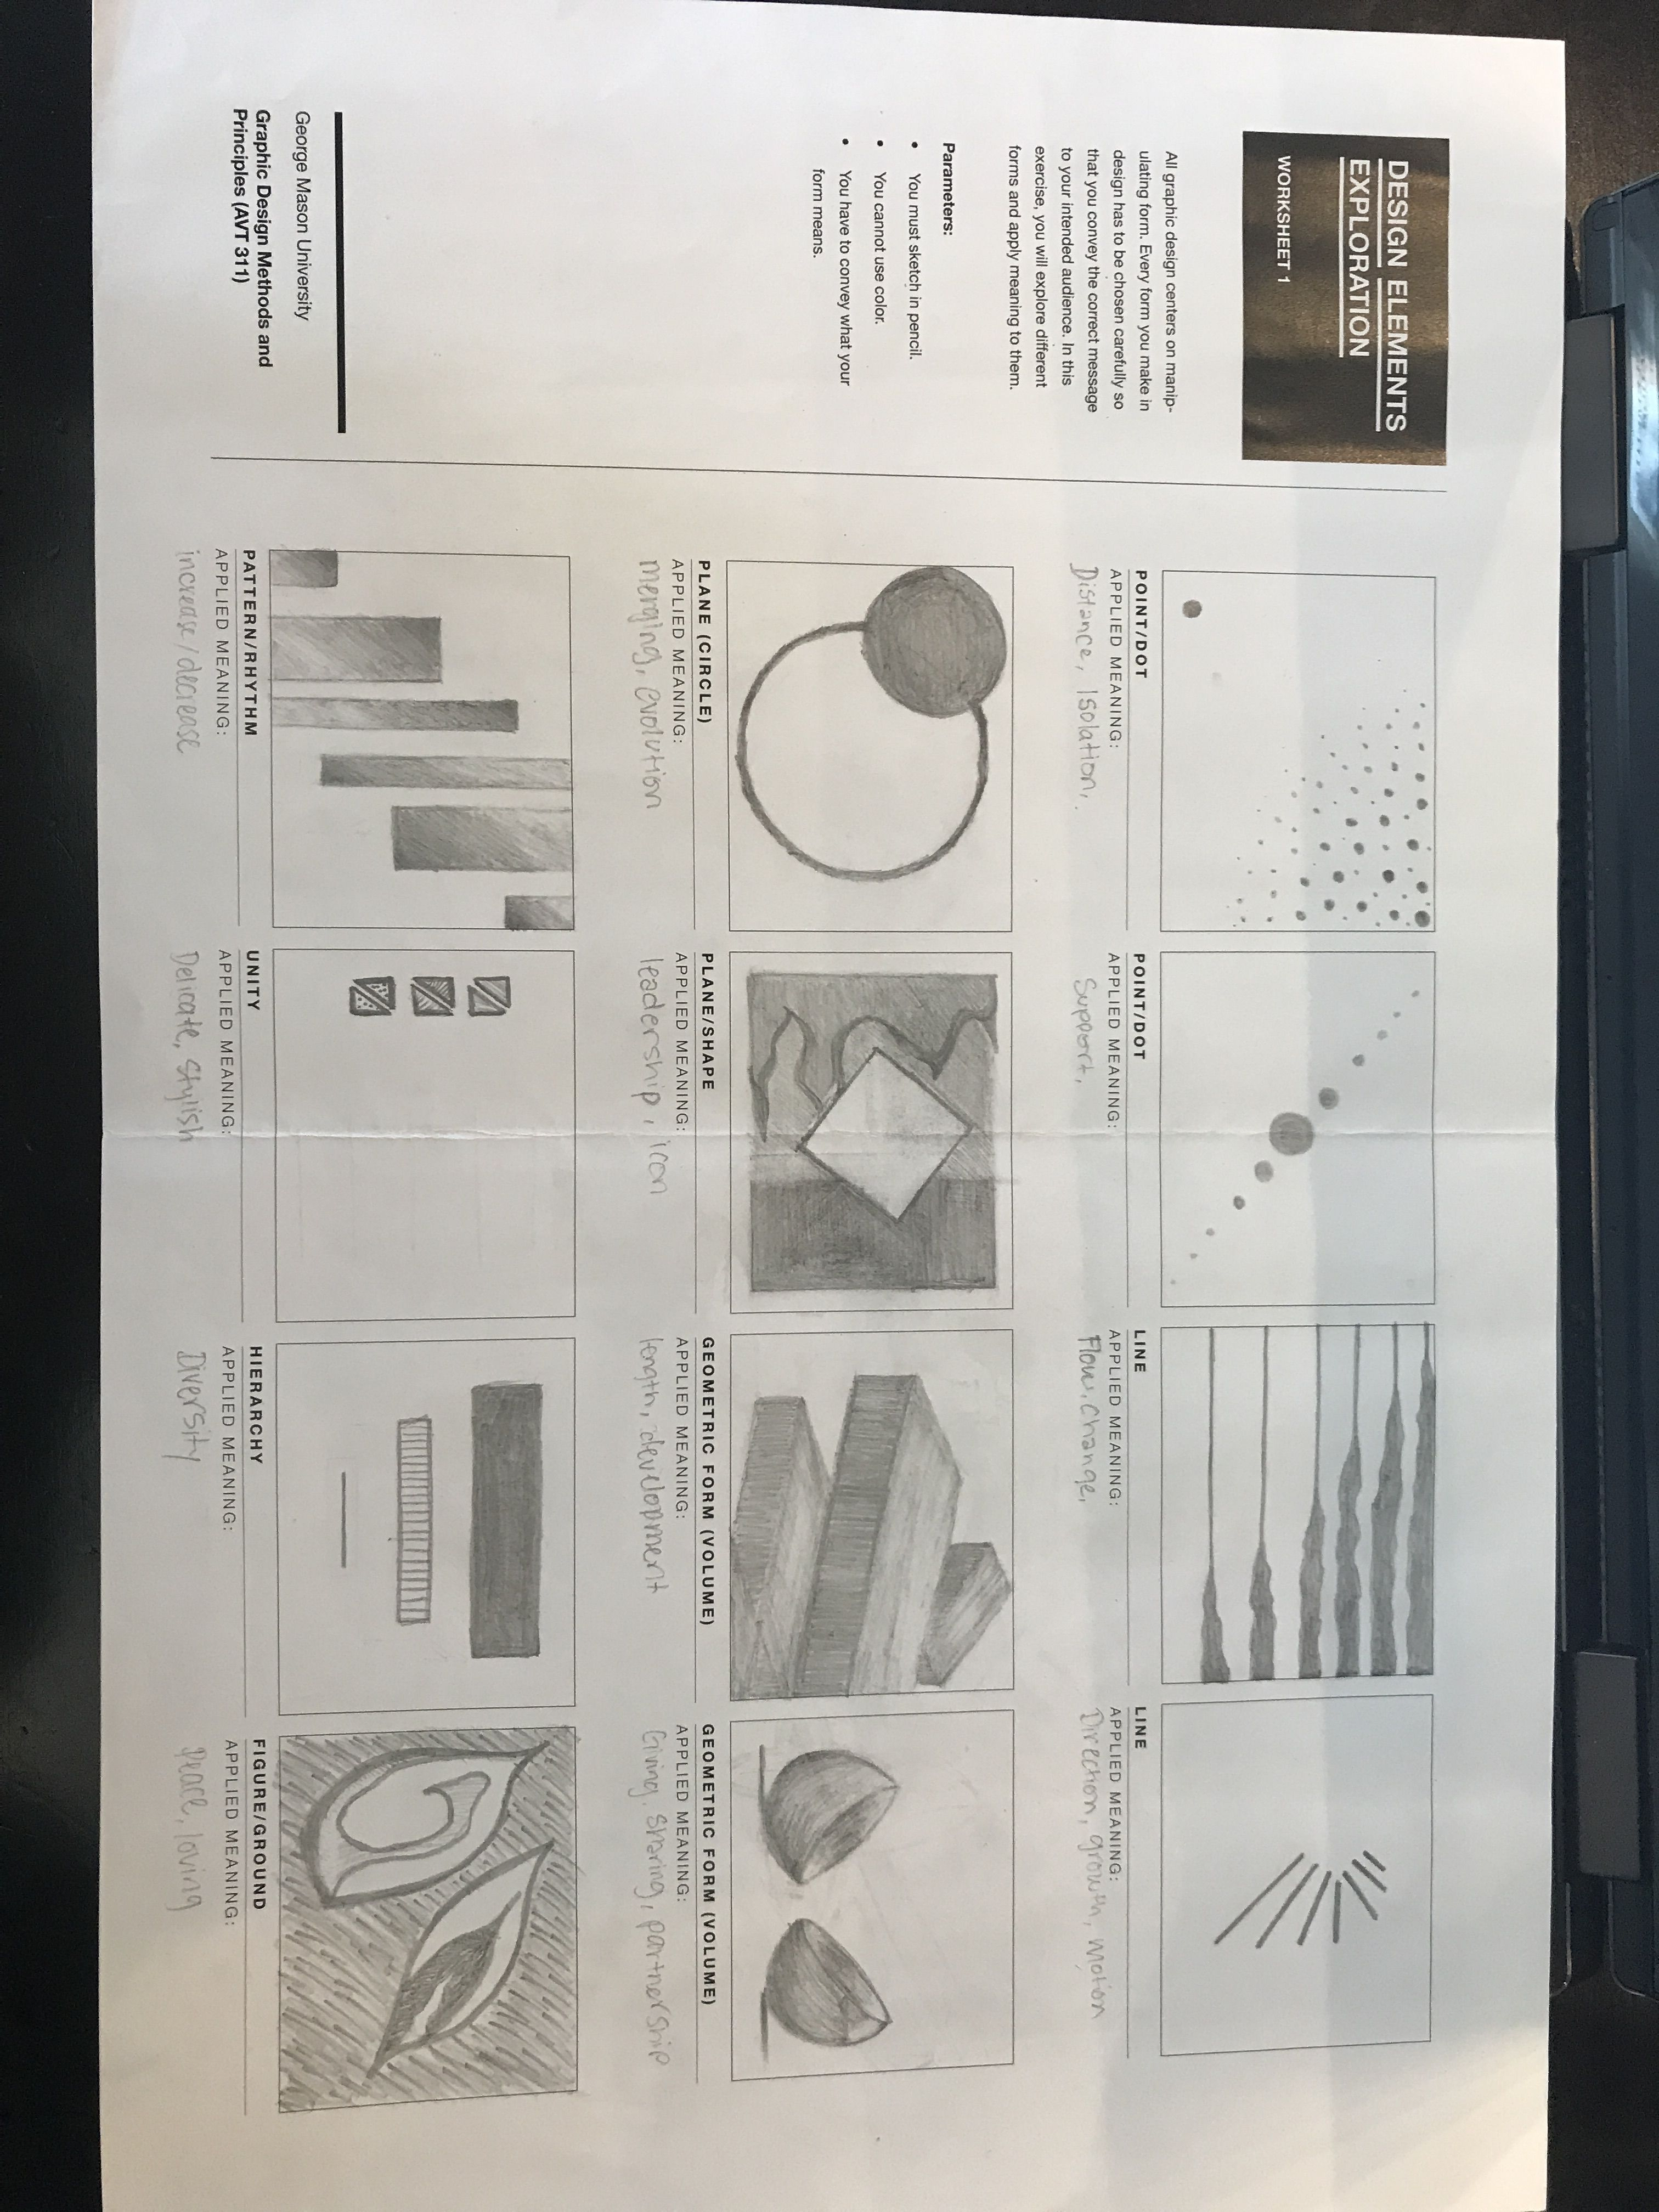 This Worksheet Helped Us Work With The Elements Of Design